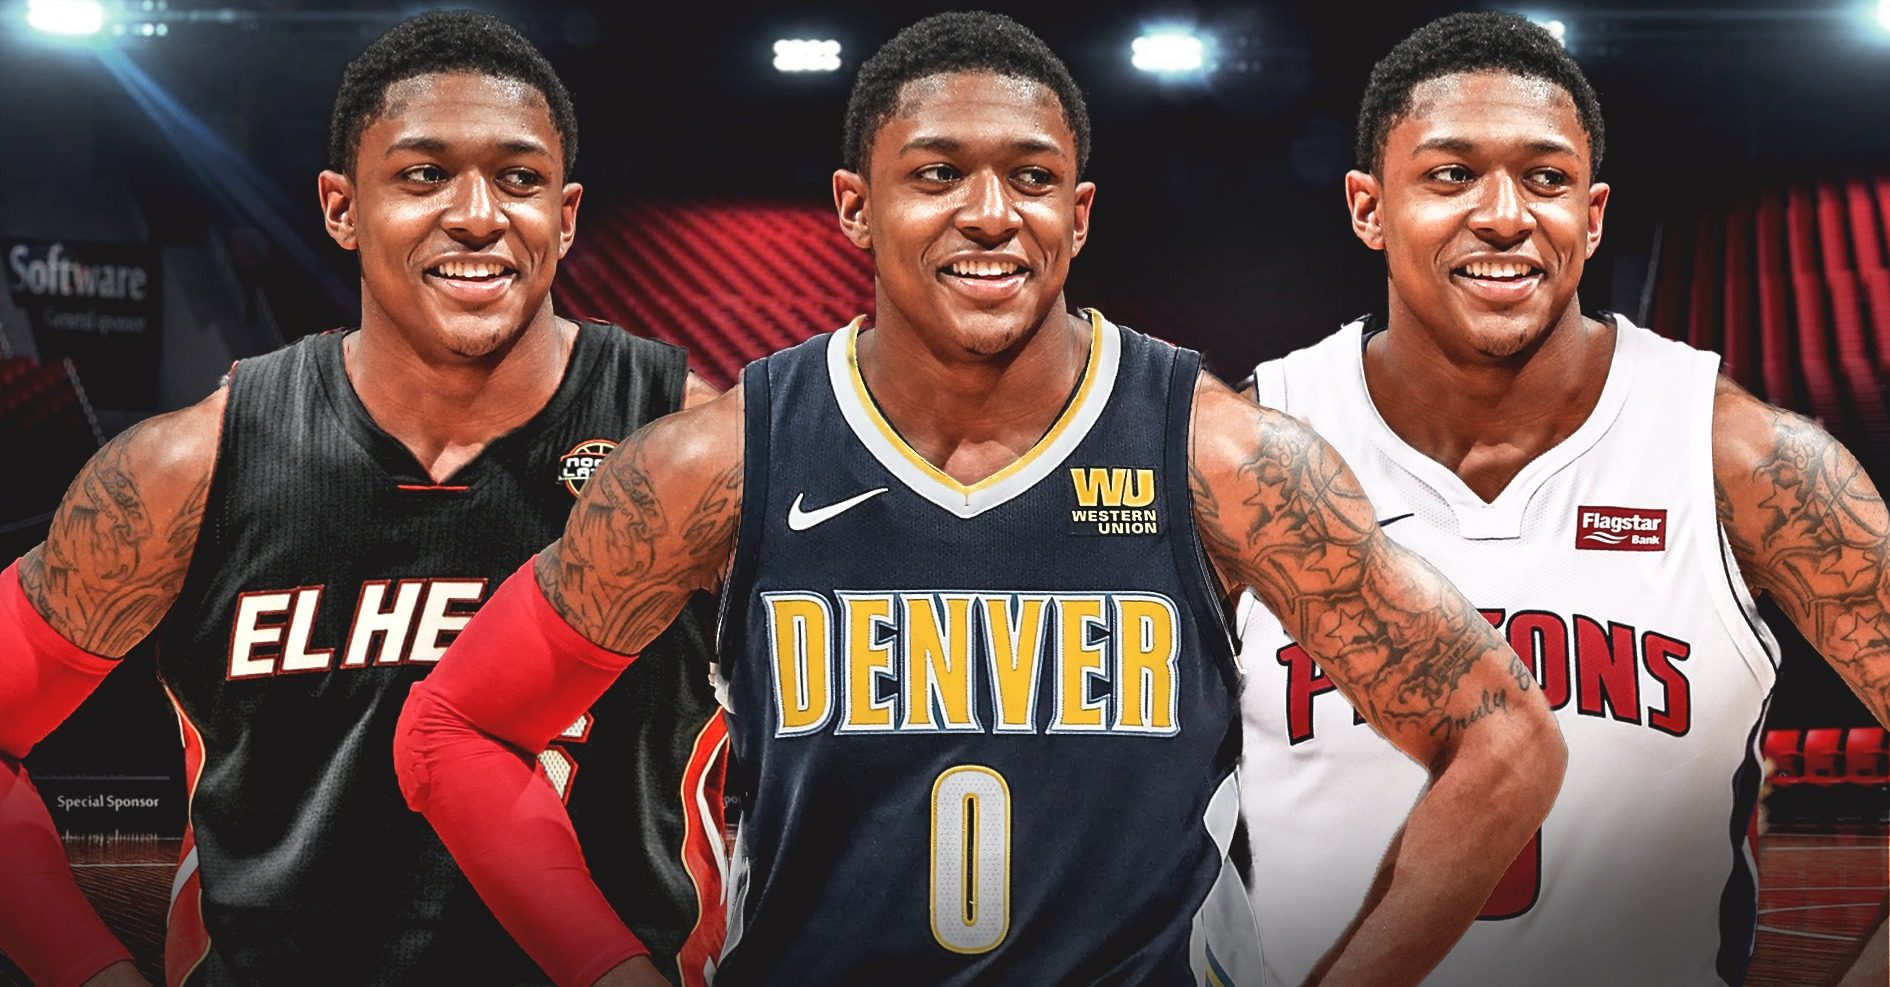 Bradley Beal on Miami Heat, Denver Nuggets, and Detroit Pistons